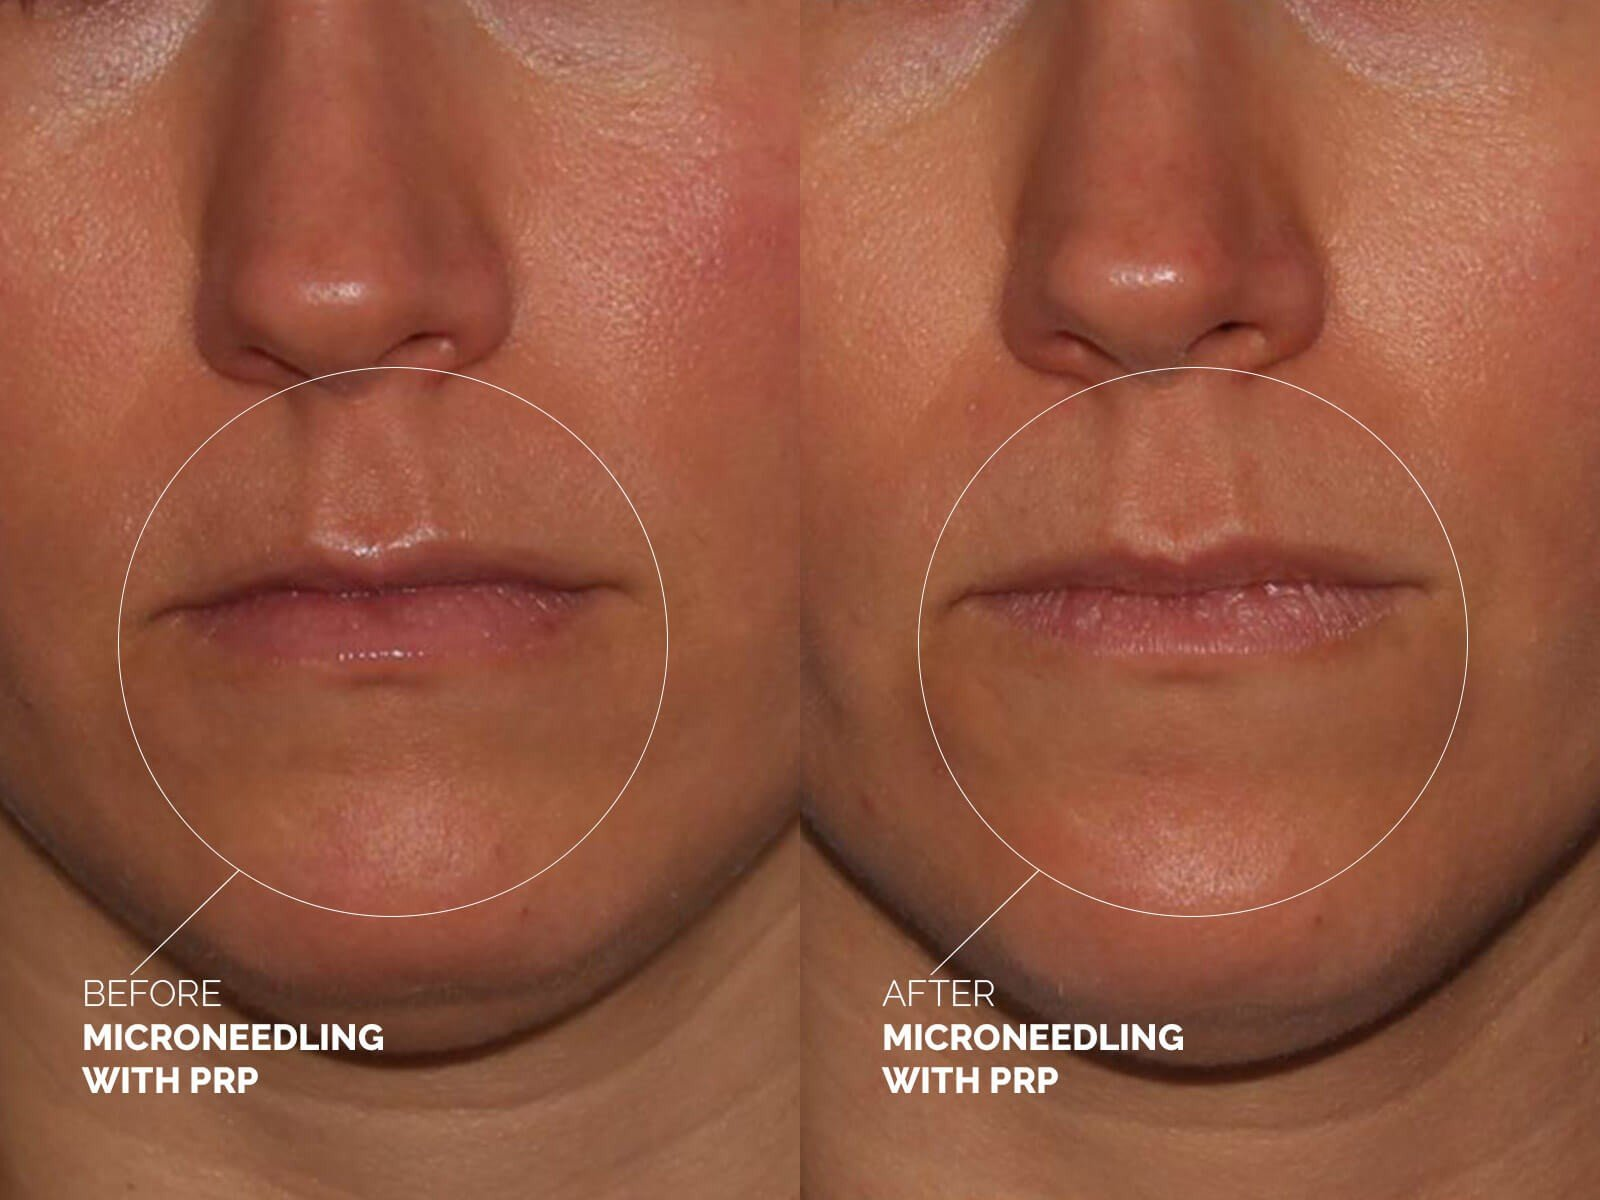 microneedling-prp-before-after | Dr Erickson Dermatology